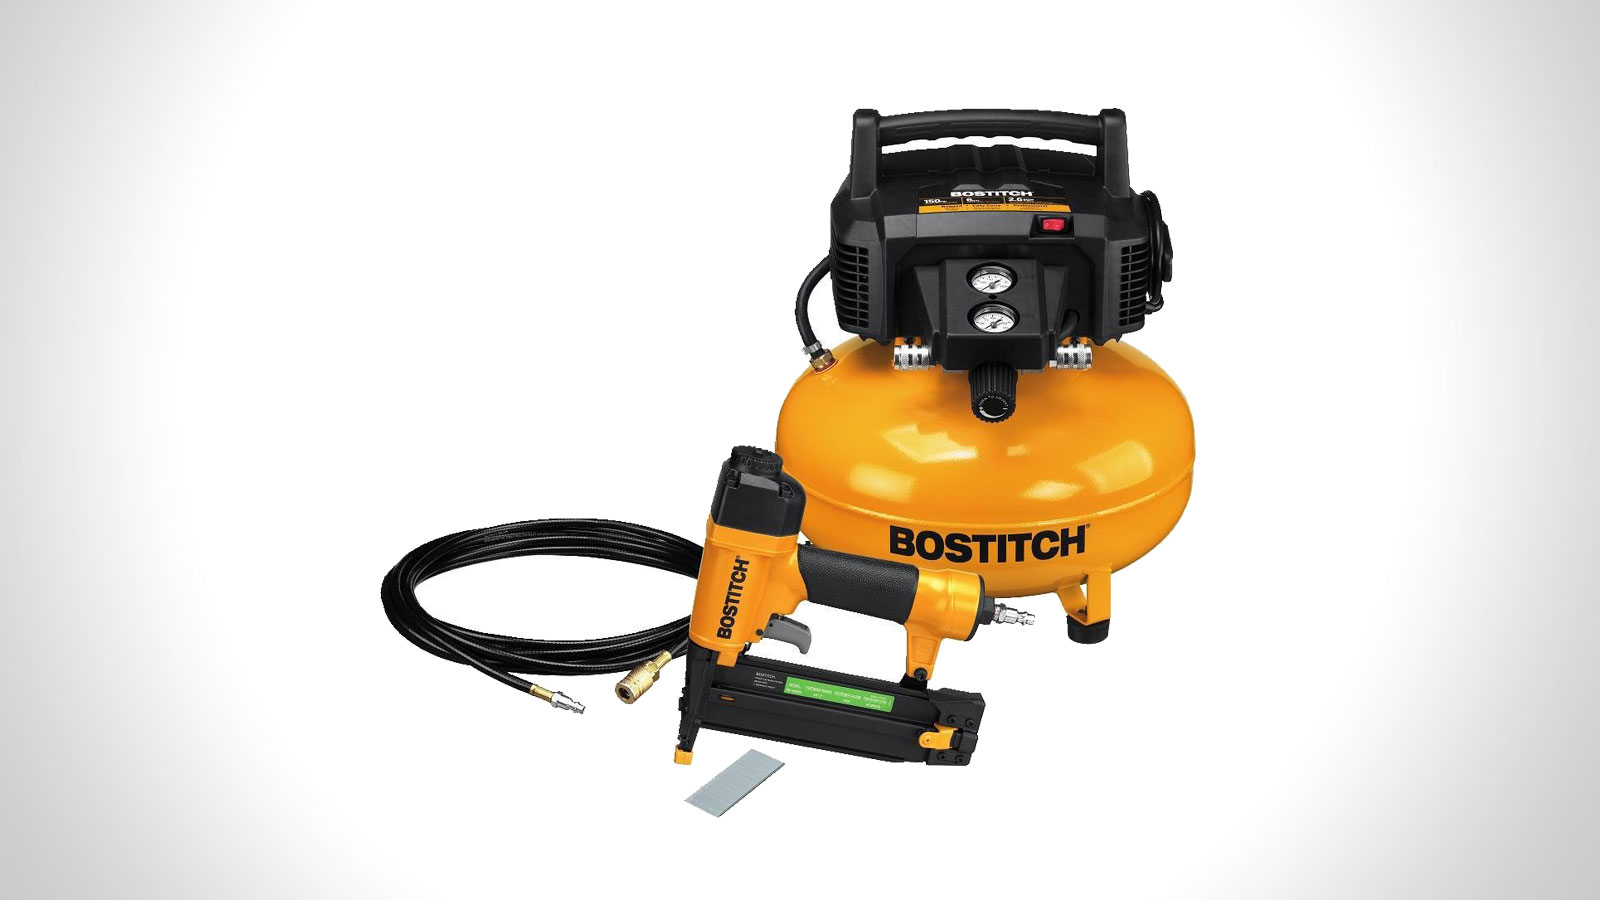 Bostitch Brad Nail & Compressor Combo Kit   gifts for men   the best tool gift ideas